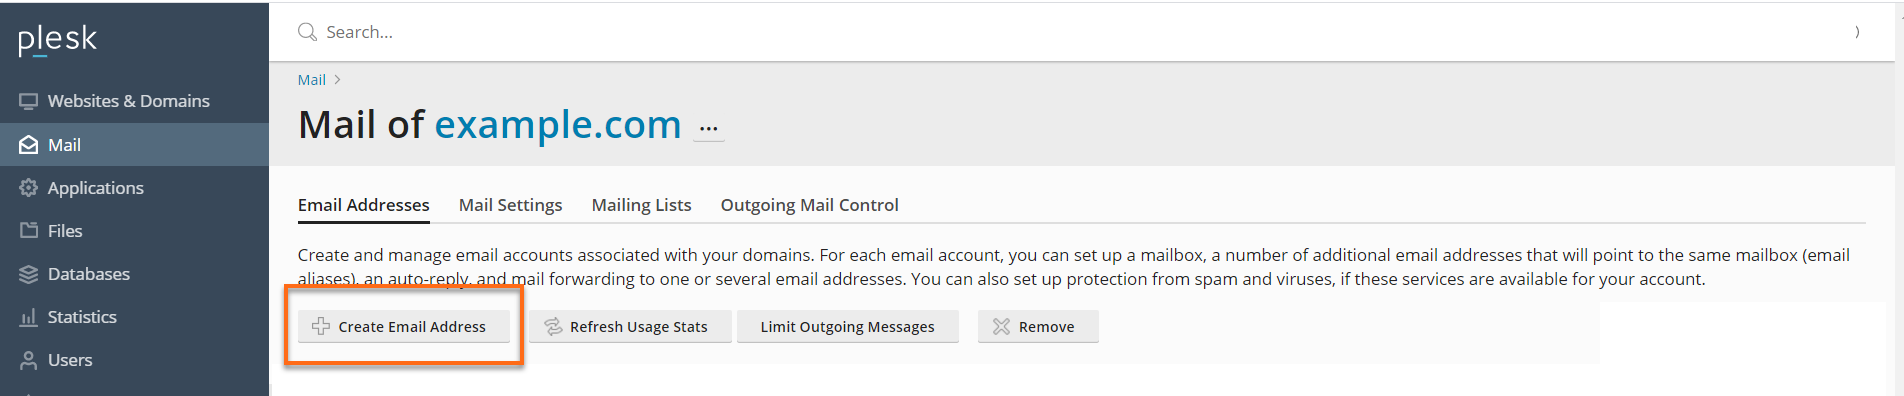 Create Email Address Button